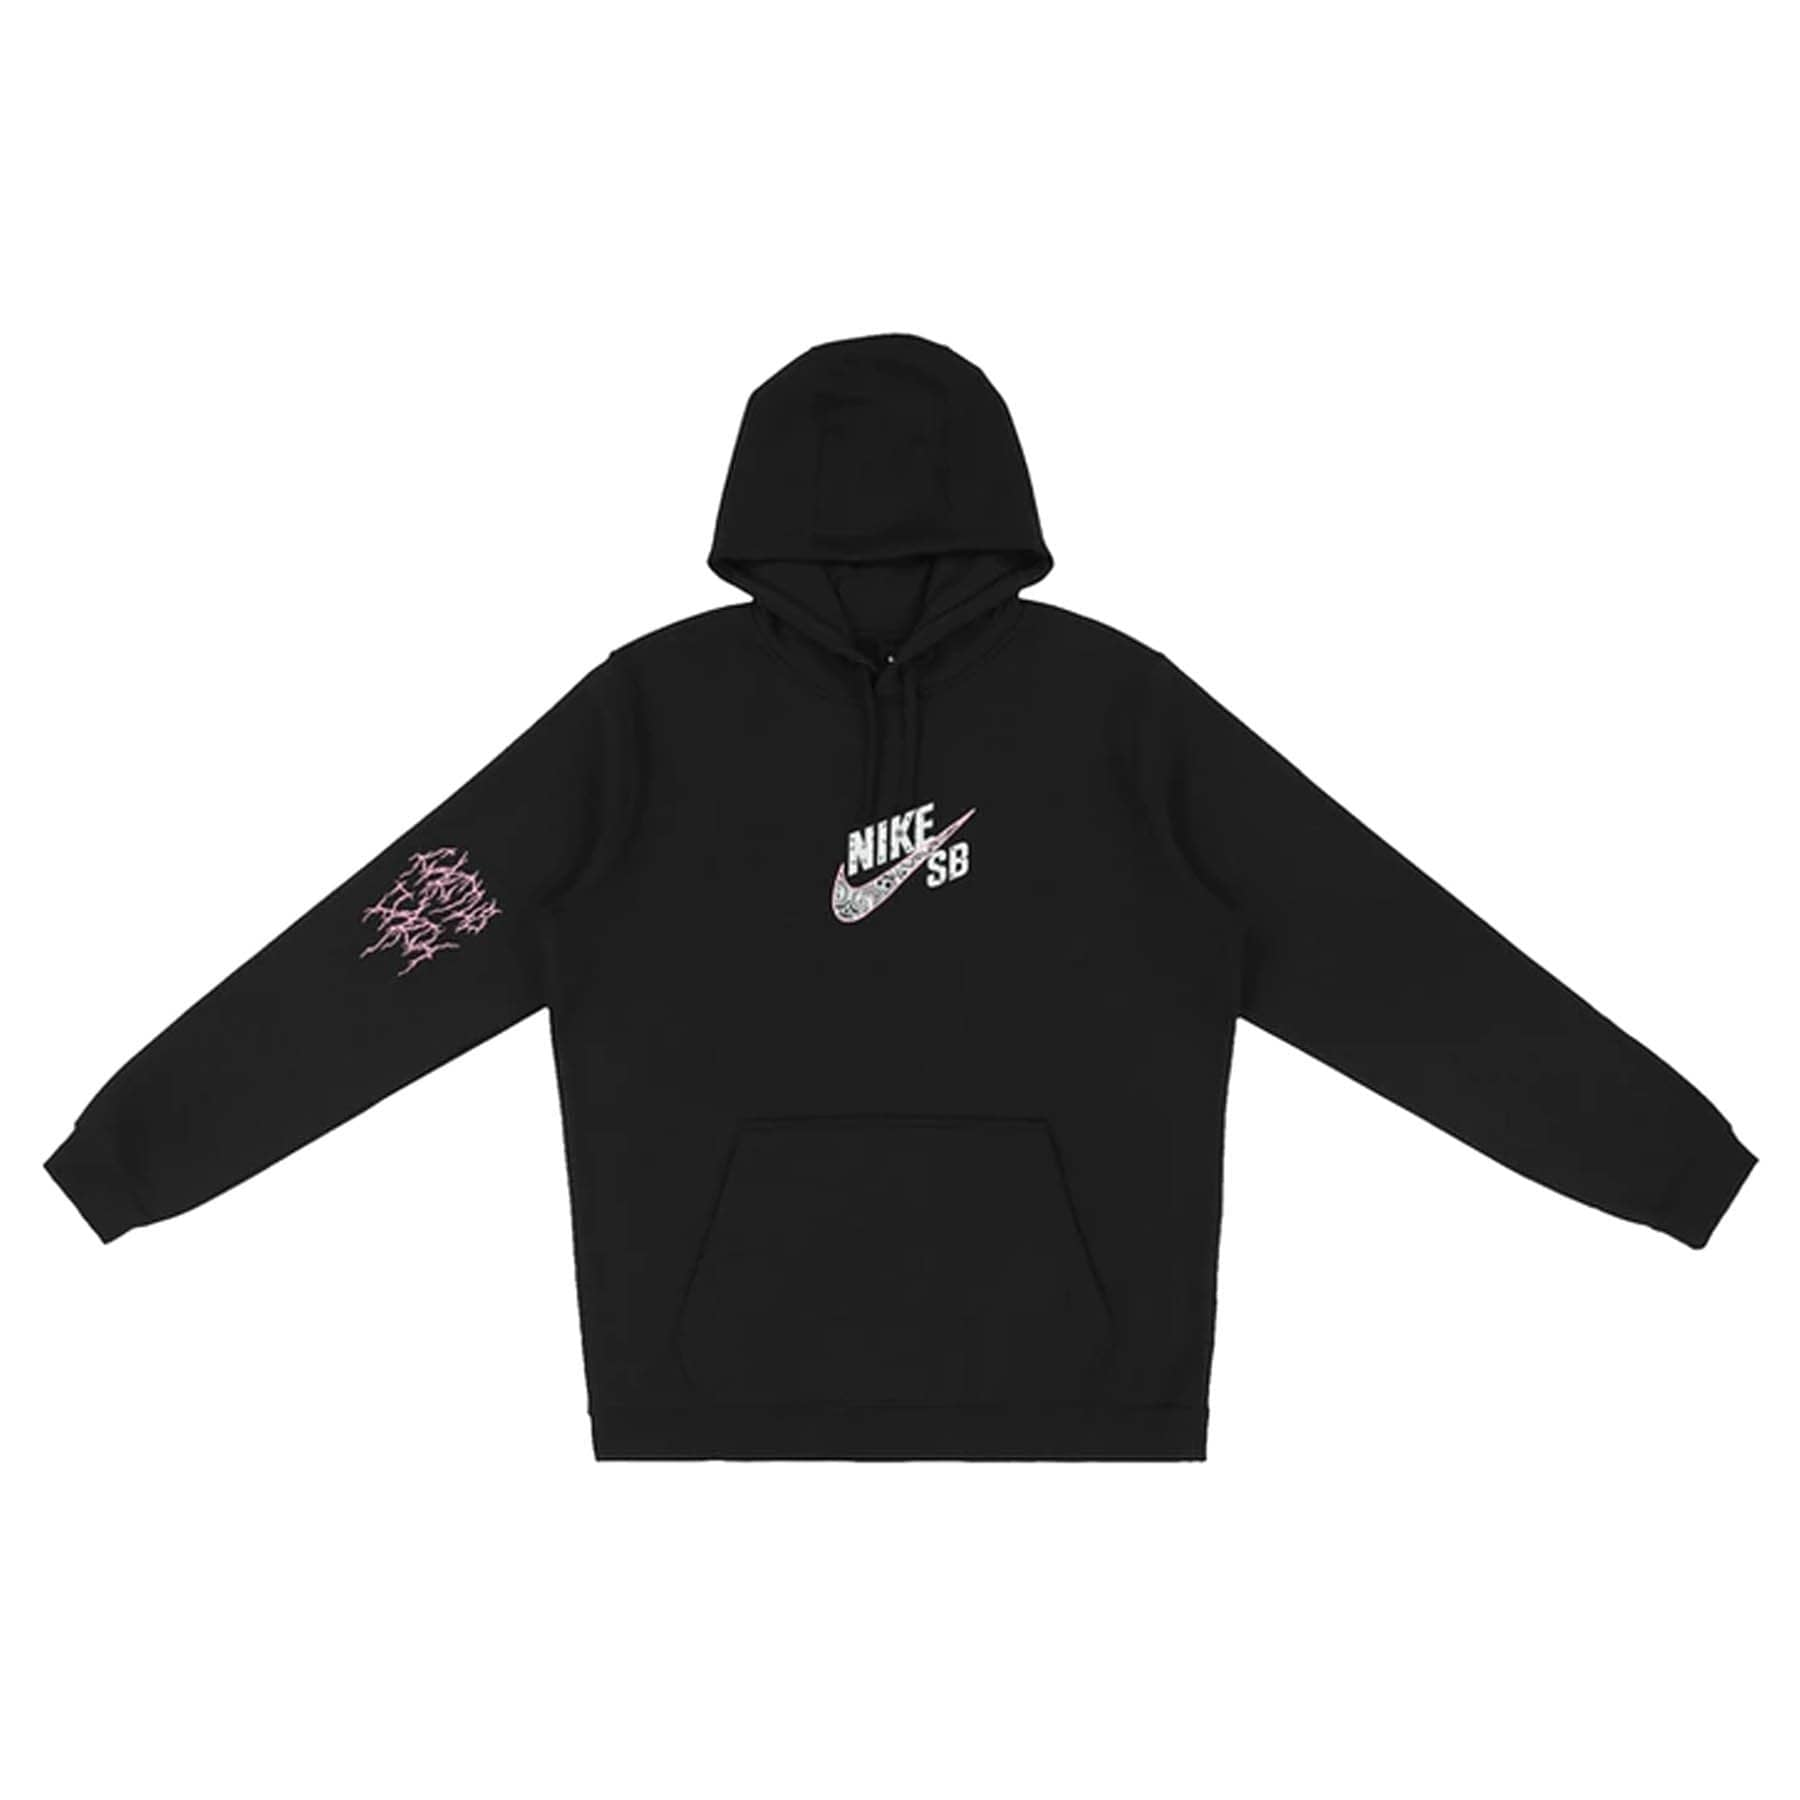 Travis Scott Cactus Jack For Nike SB Hoodie Black - Kick Game